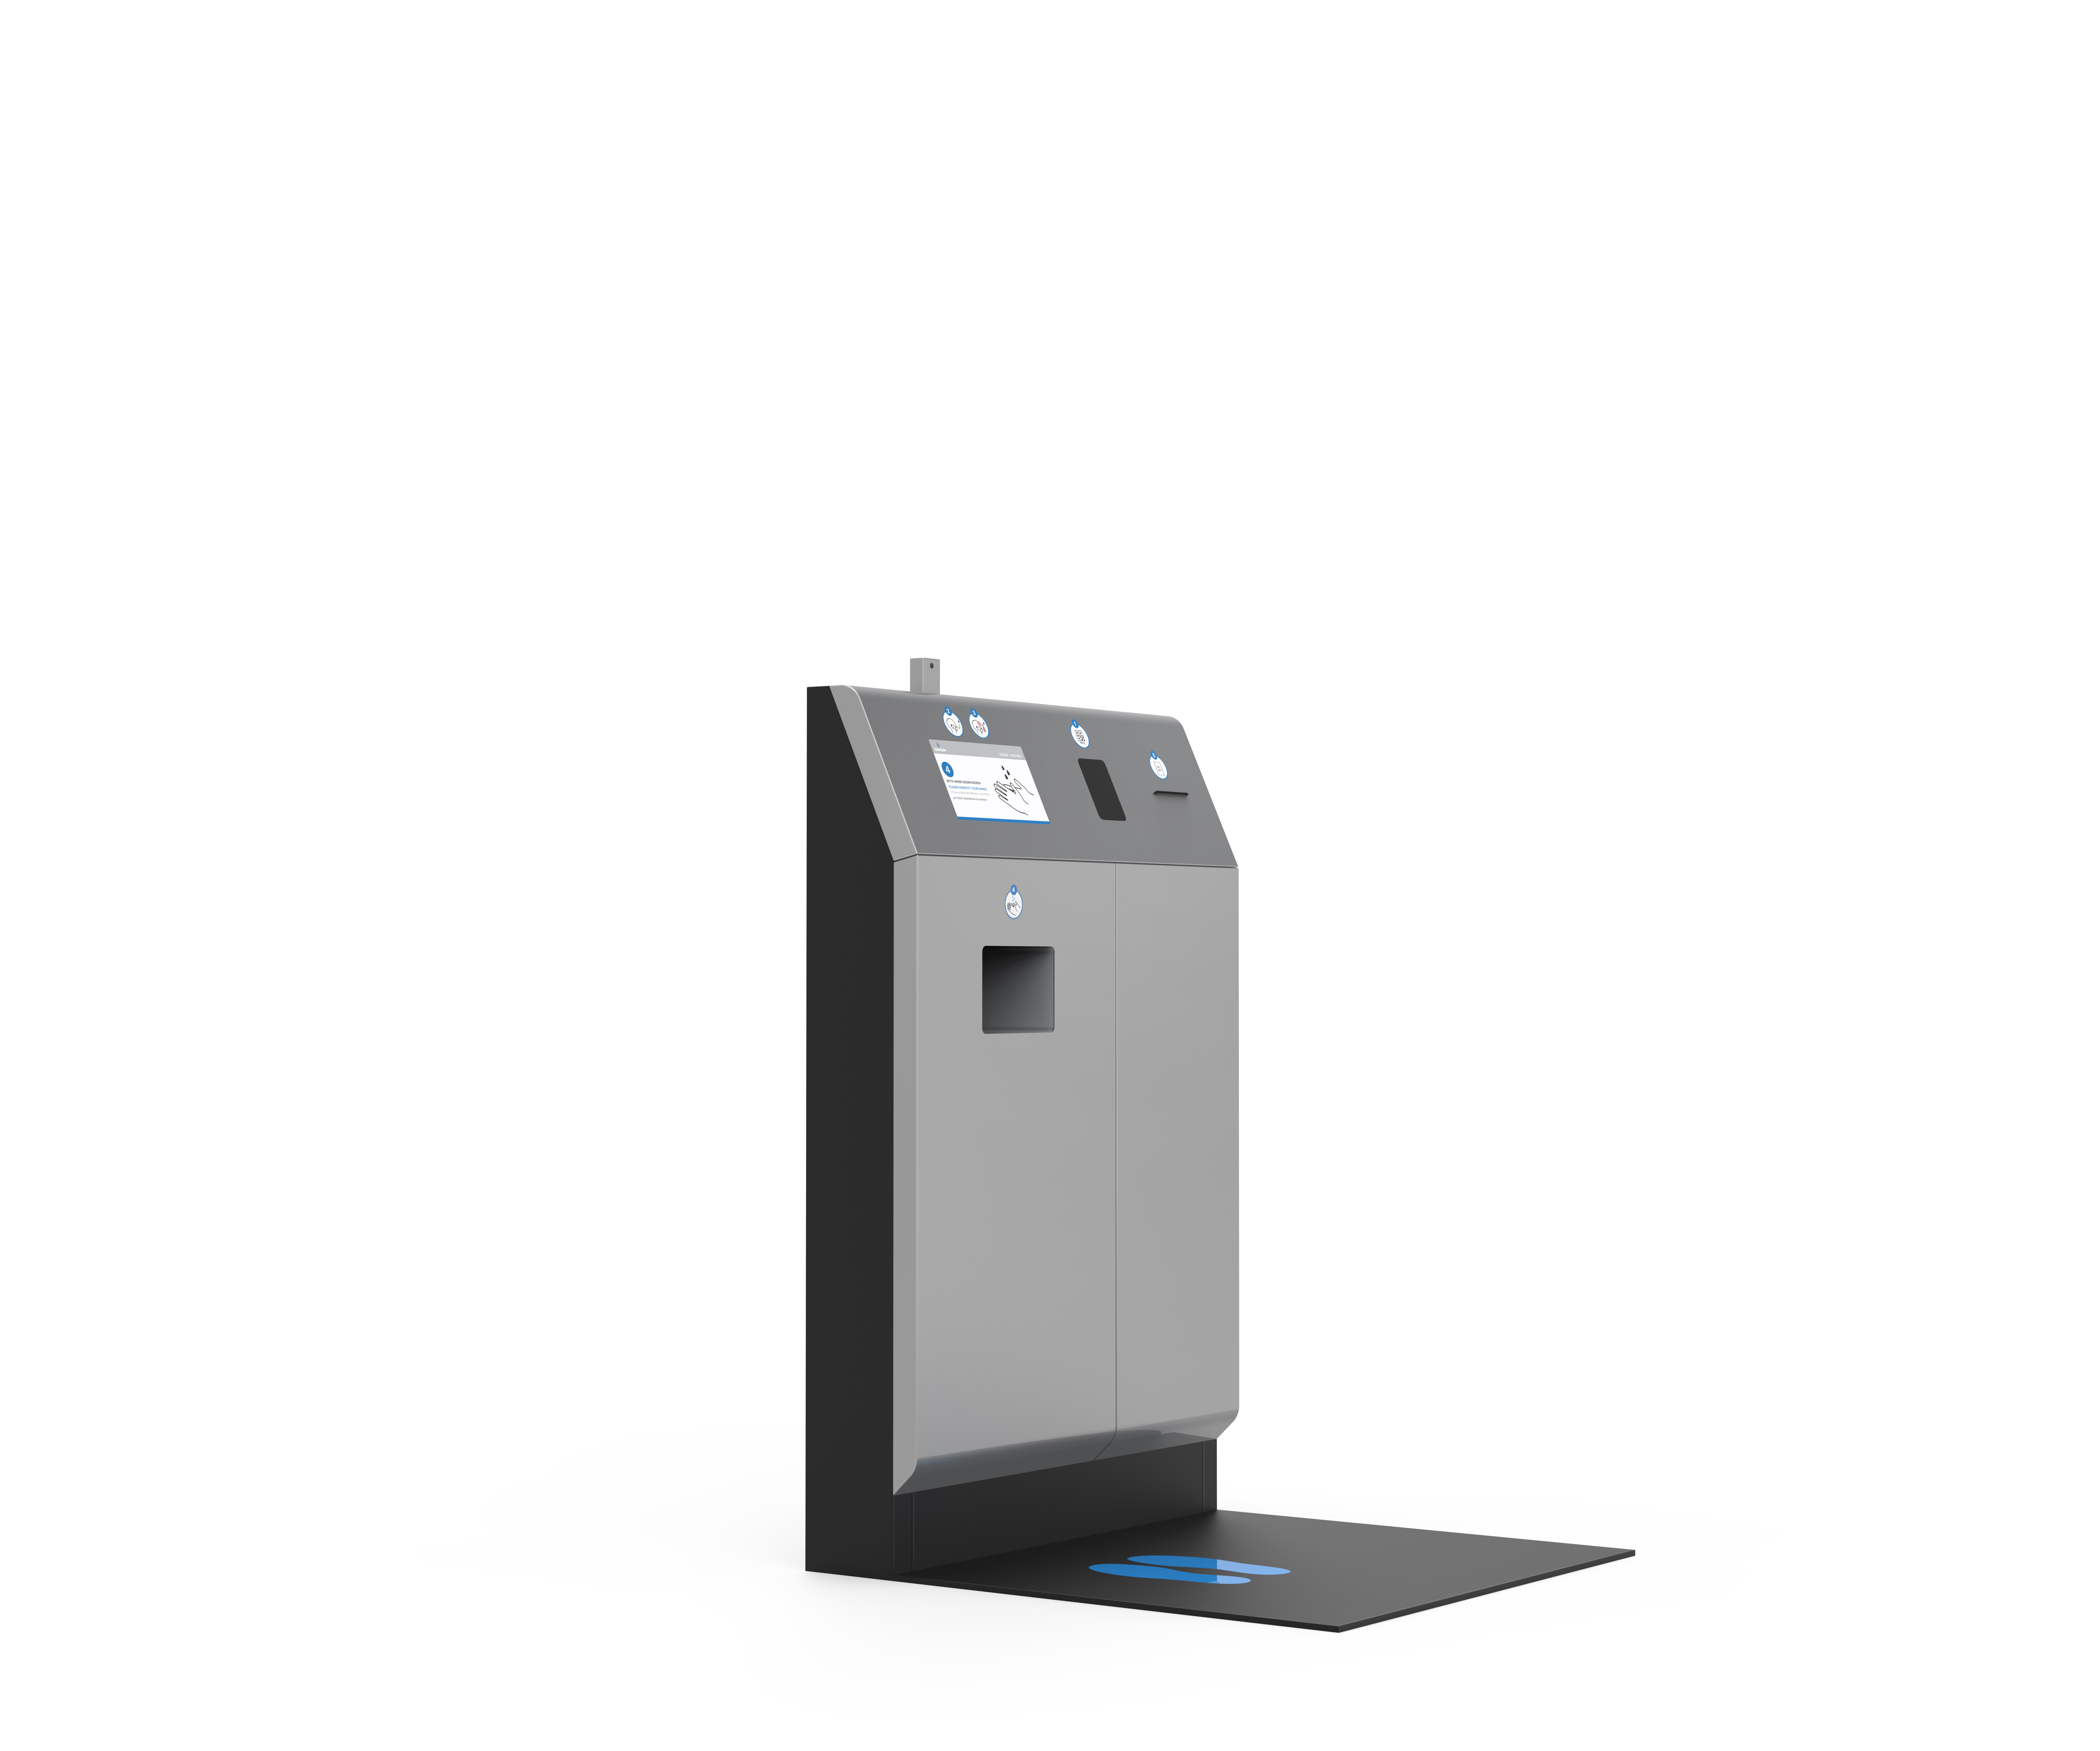 Freestanding terminal module with turnstile